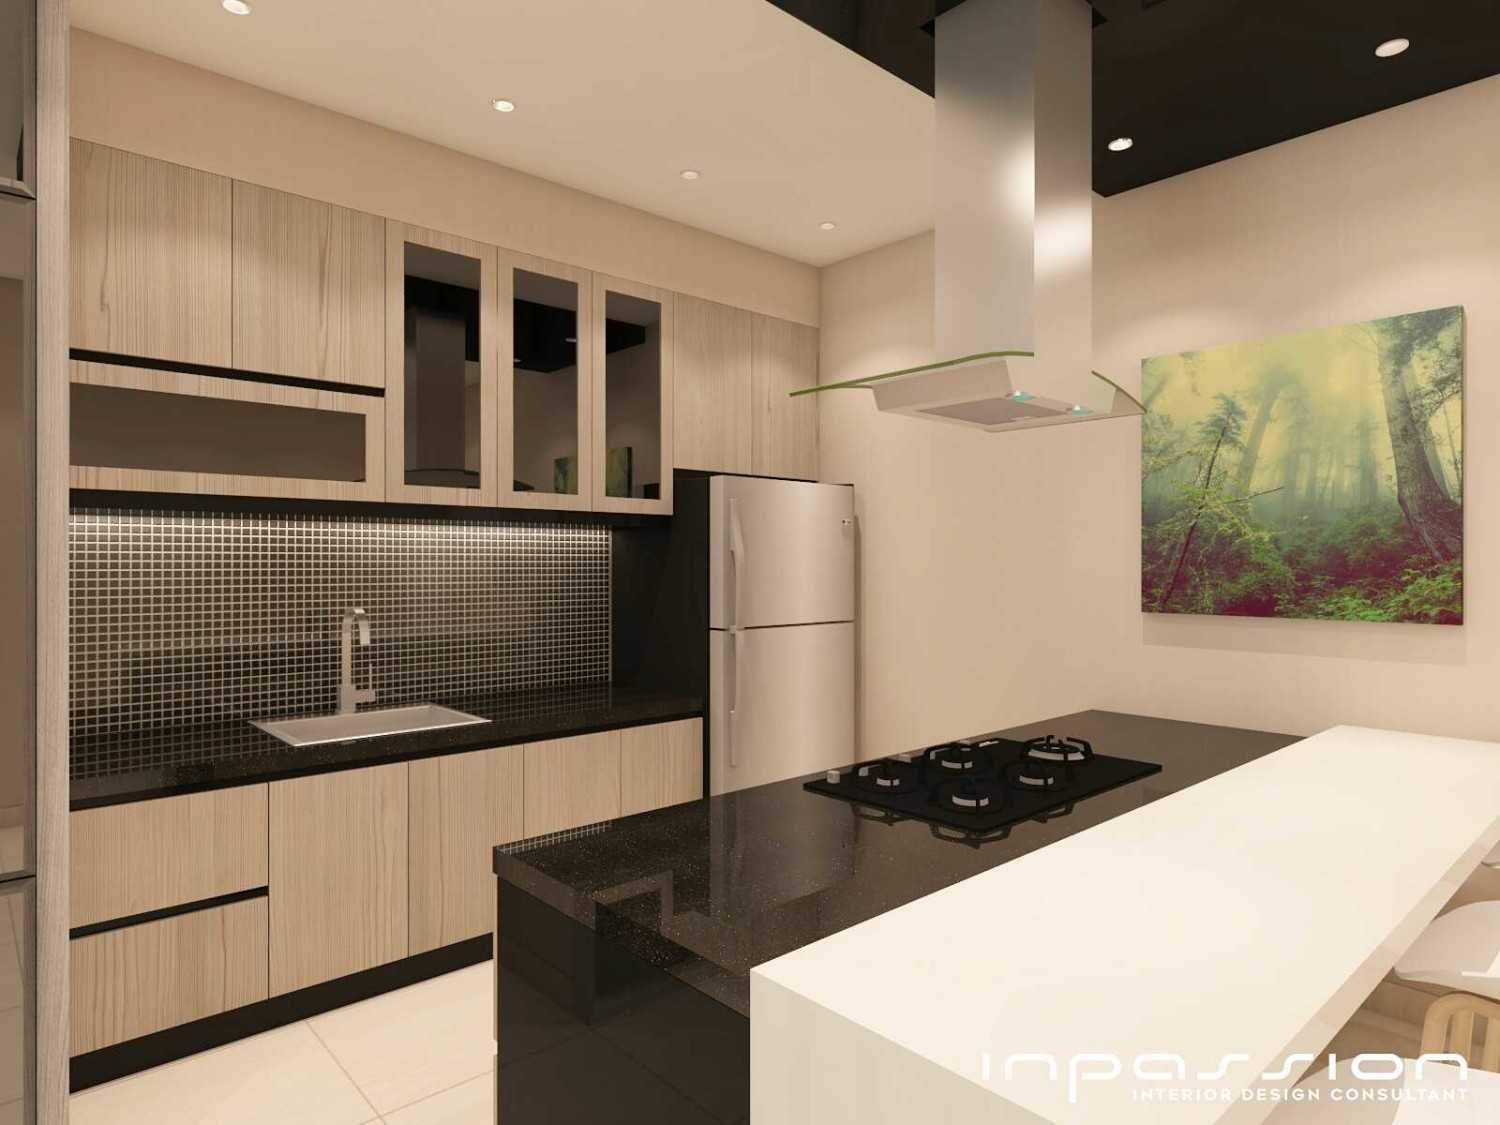 Inpassion Interior Design Kitchenset Design Surabaya Surabaya Kitchen Kontemporer 22157